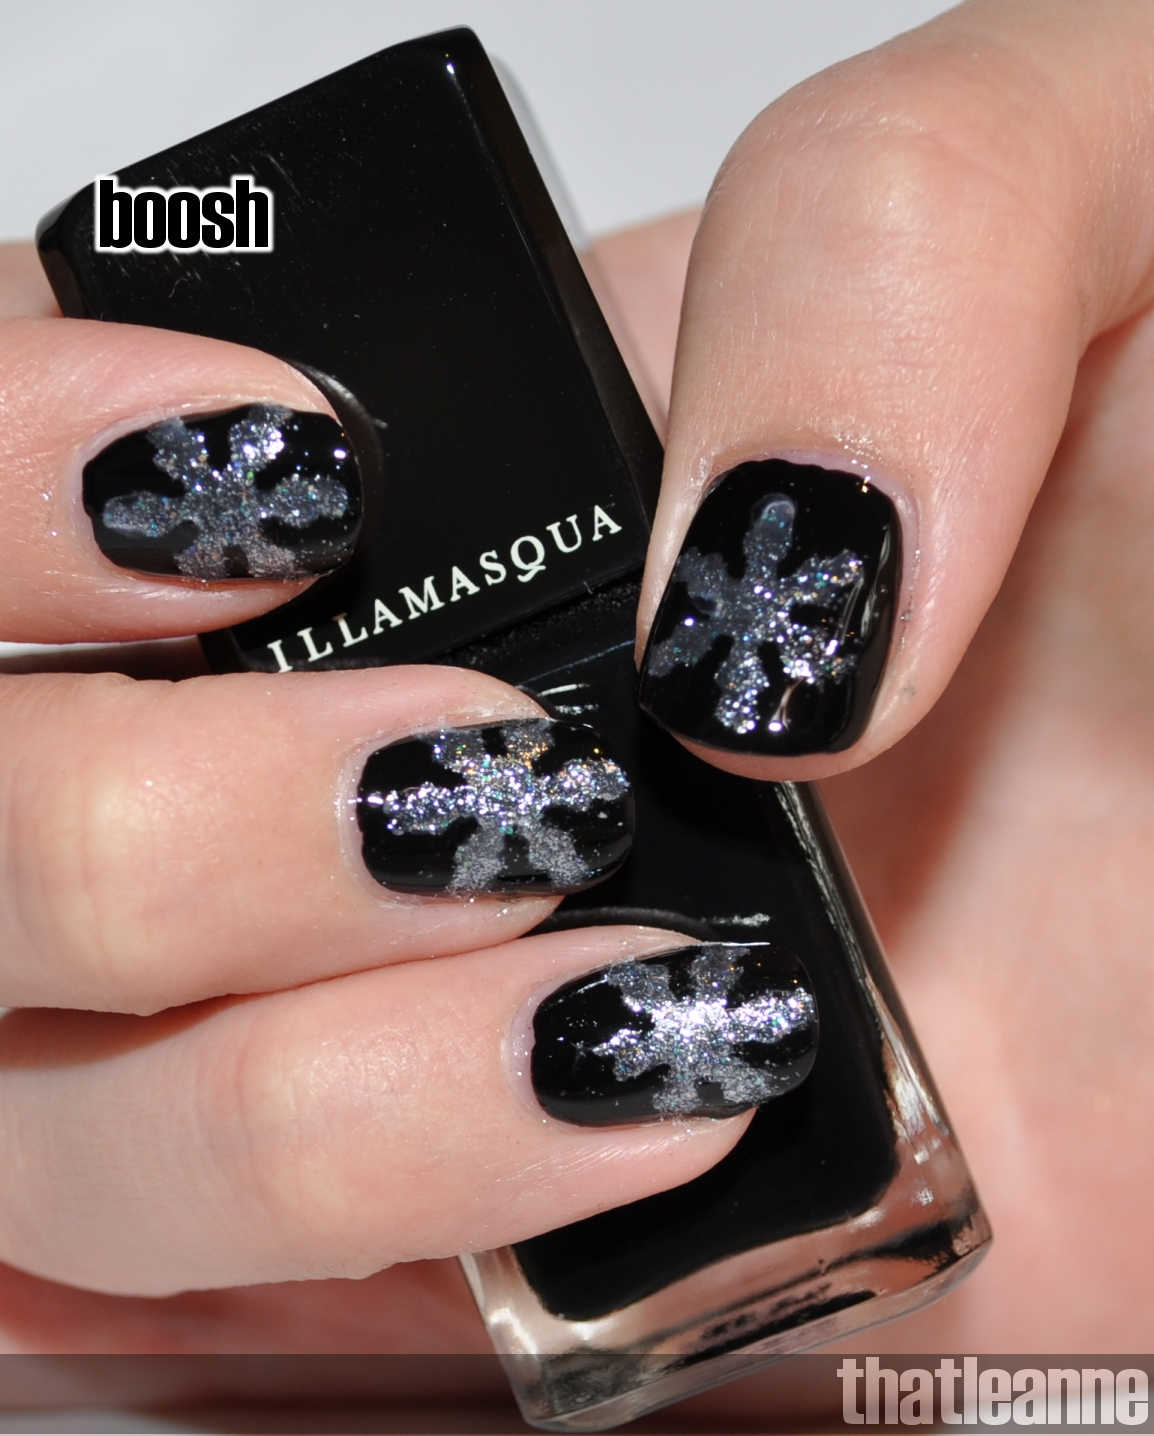 Thatleanne Chococat Nail Art: Thatleanne: Illamasqua Boosh With A Touch Of Winter